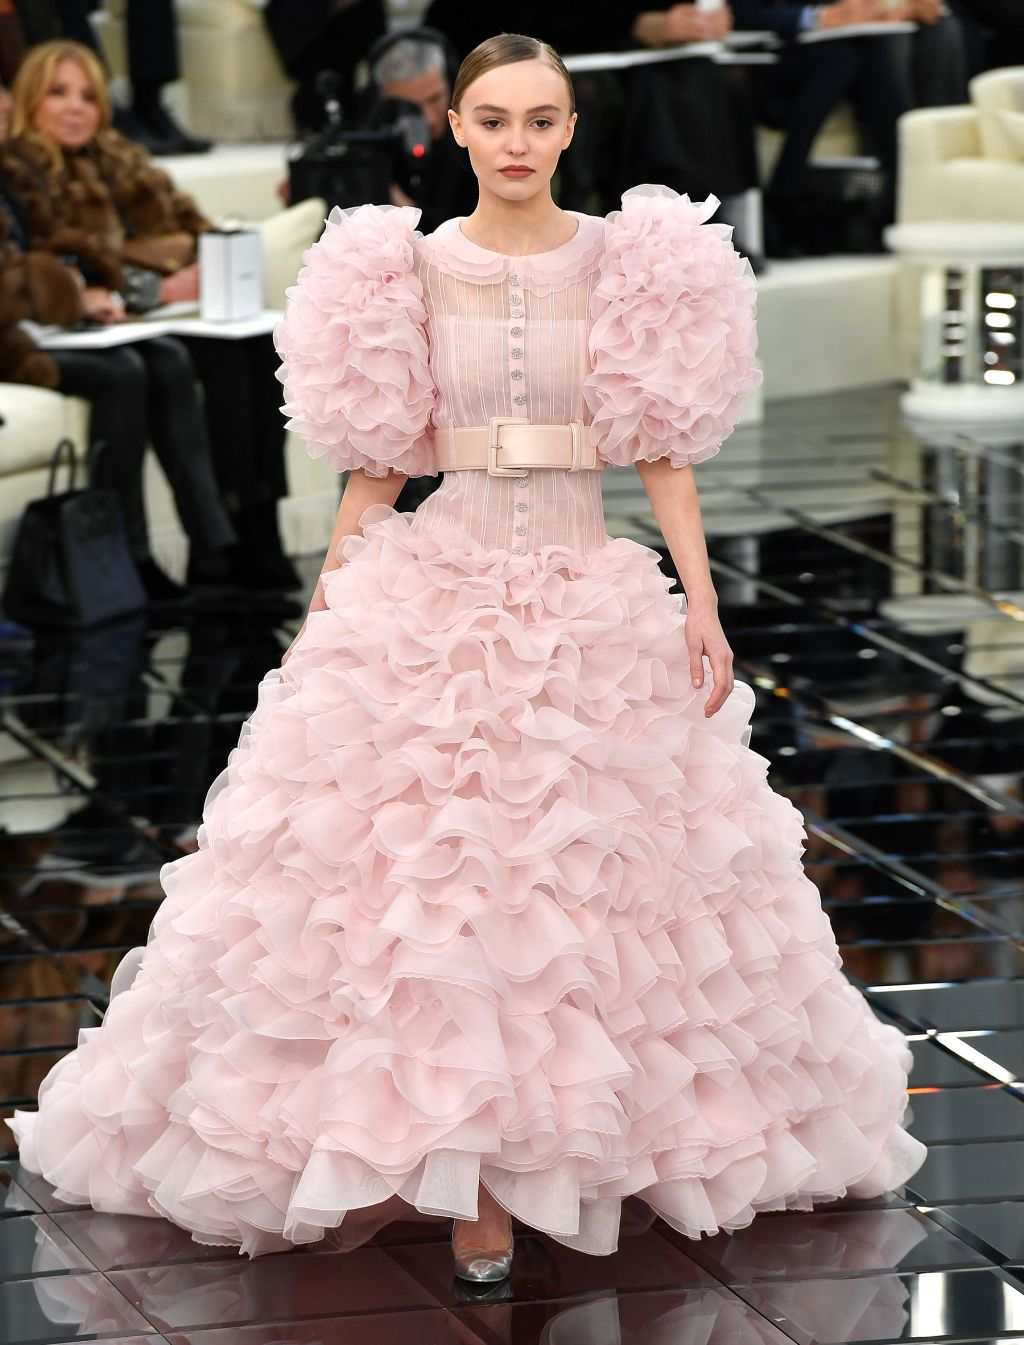 Lily-Rose Depp, 17, Wears Over-the-Top Wedding Gown on Chanel Runway ...